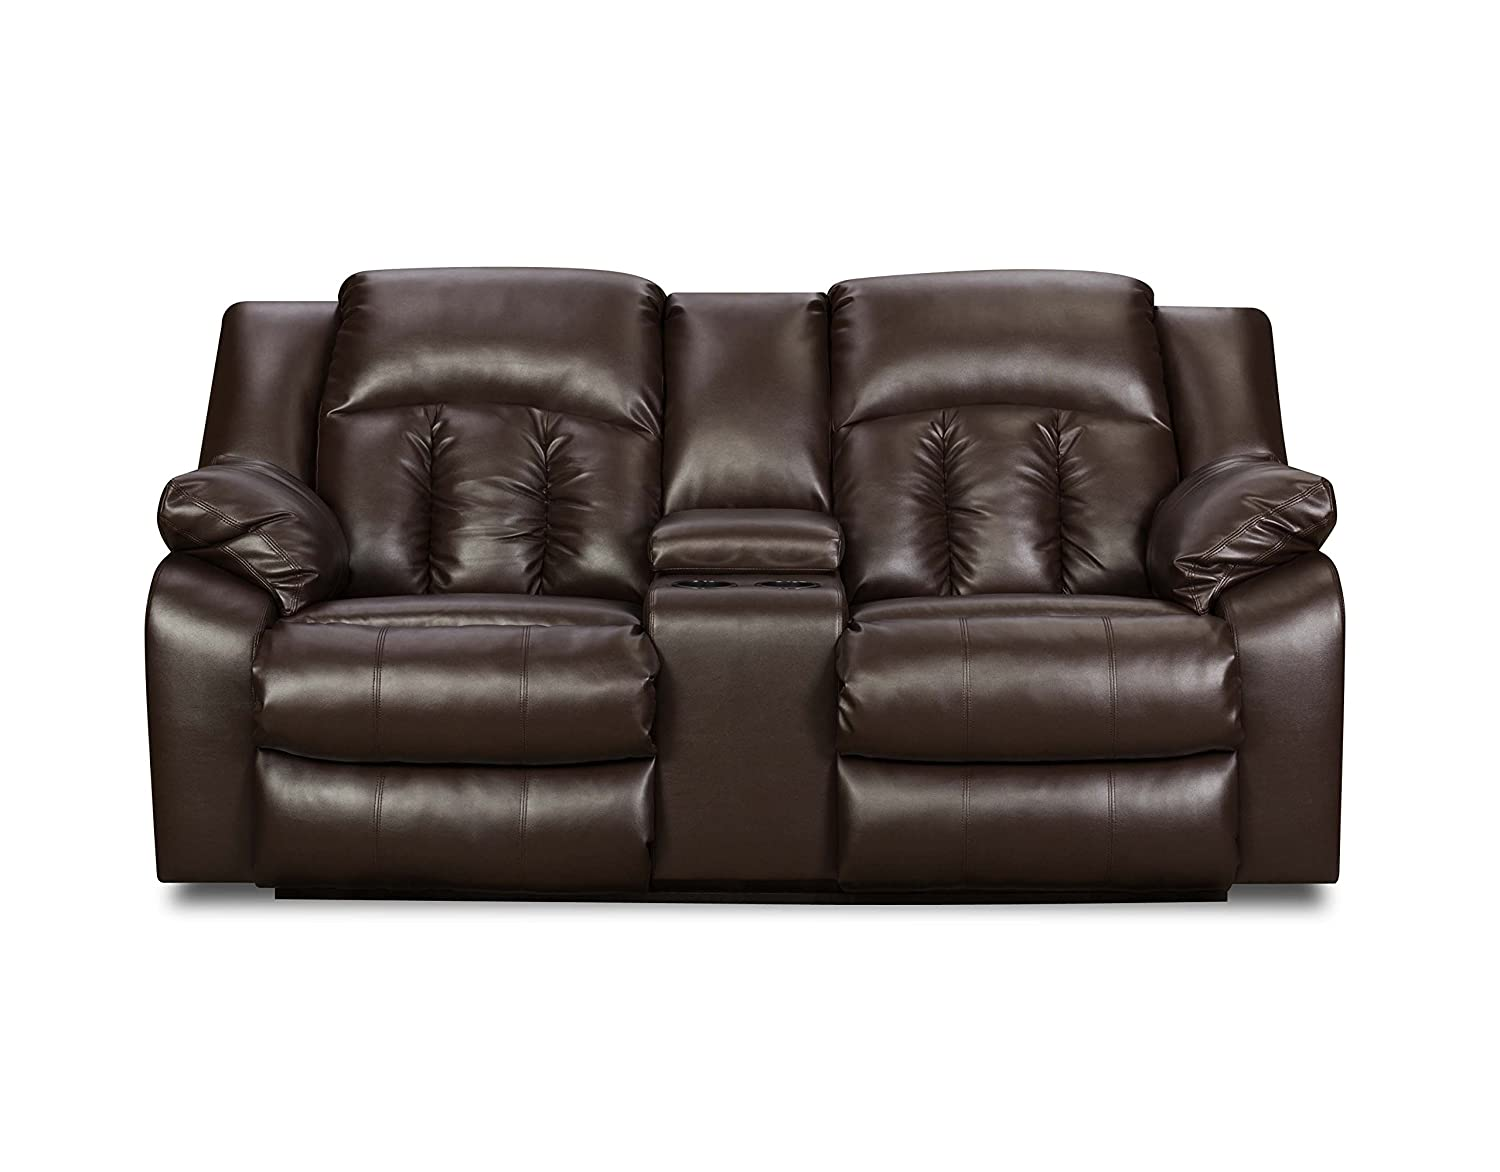 Simmons Upholstery Sebring Bonded Leather Double Motion Console Loveseat